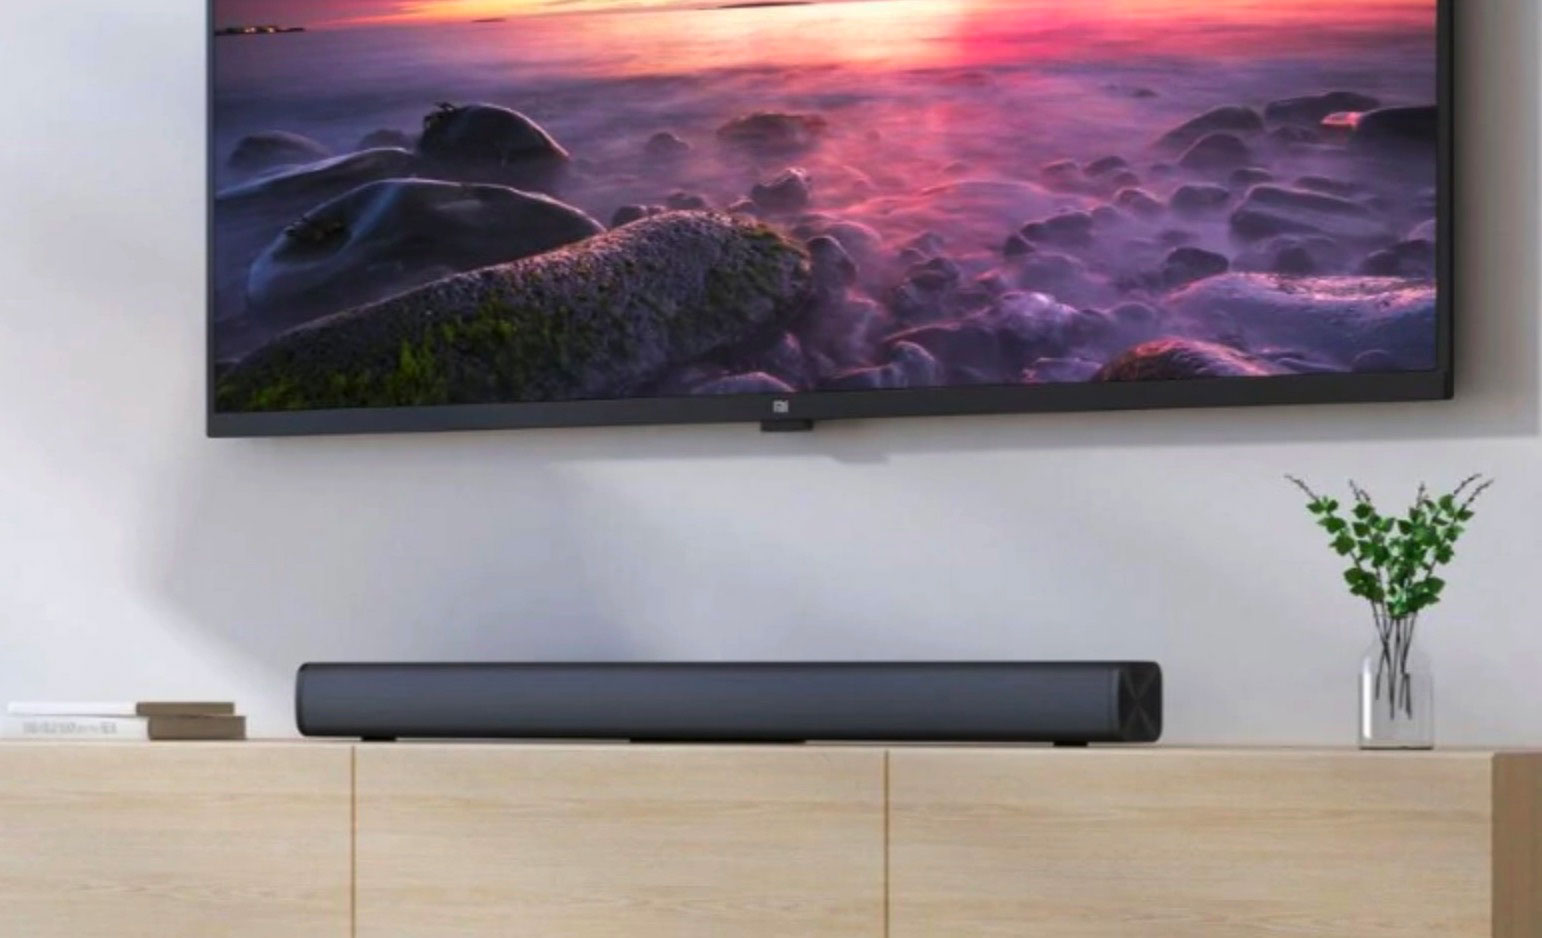 xiaomi redmi tv soundbar - The Xiaomi Redmi TV SoundBar at 39 €, a very small price for a large soundbar - FREDZONE